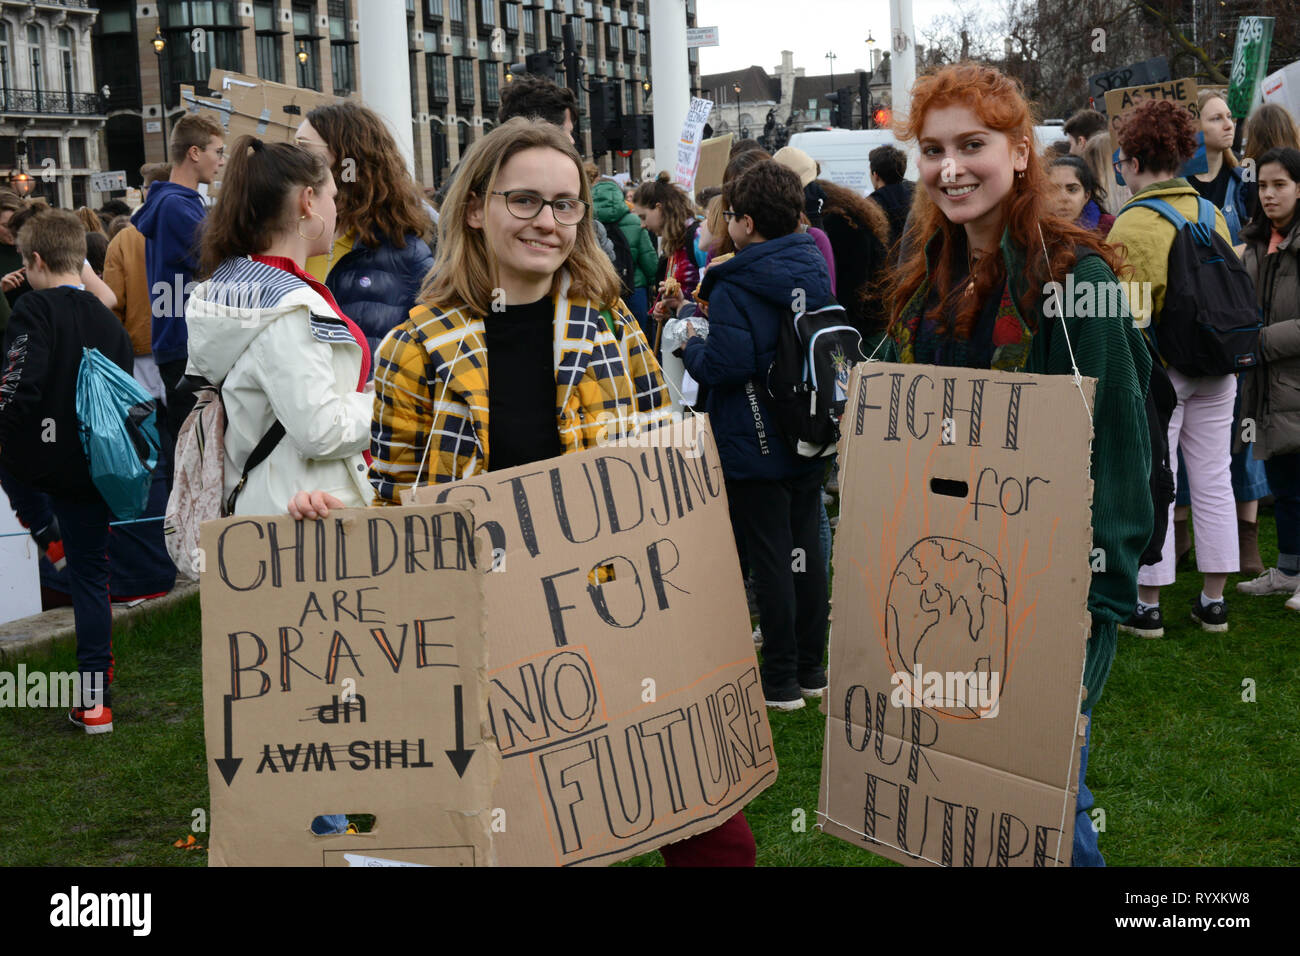 London, UK. 15th Mar, 2019. School climate strike March 15th 2019, London, Parliament Square: Swedish climate activist Greta Thunberg inspired UK students to protest climate change today by walking out of schools. Students are calling for the government to take action on global warming. Credit: Thomas Krych/Alamy Live News Stock Photo